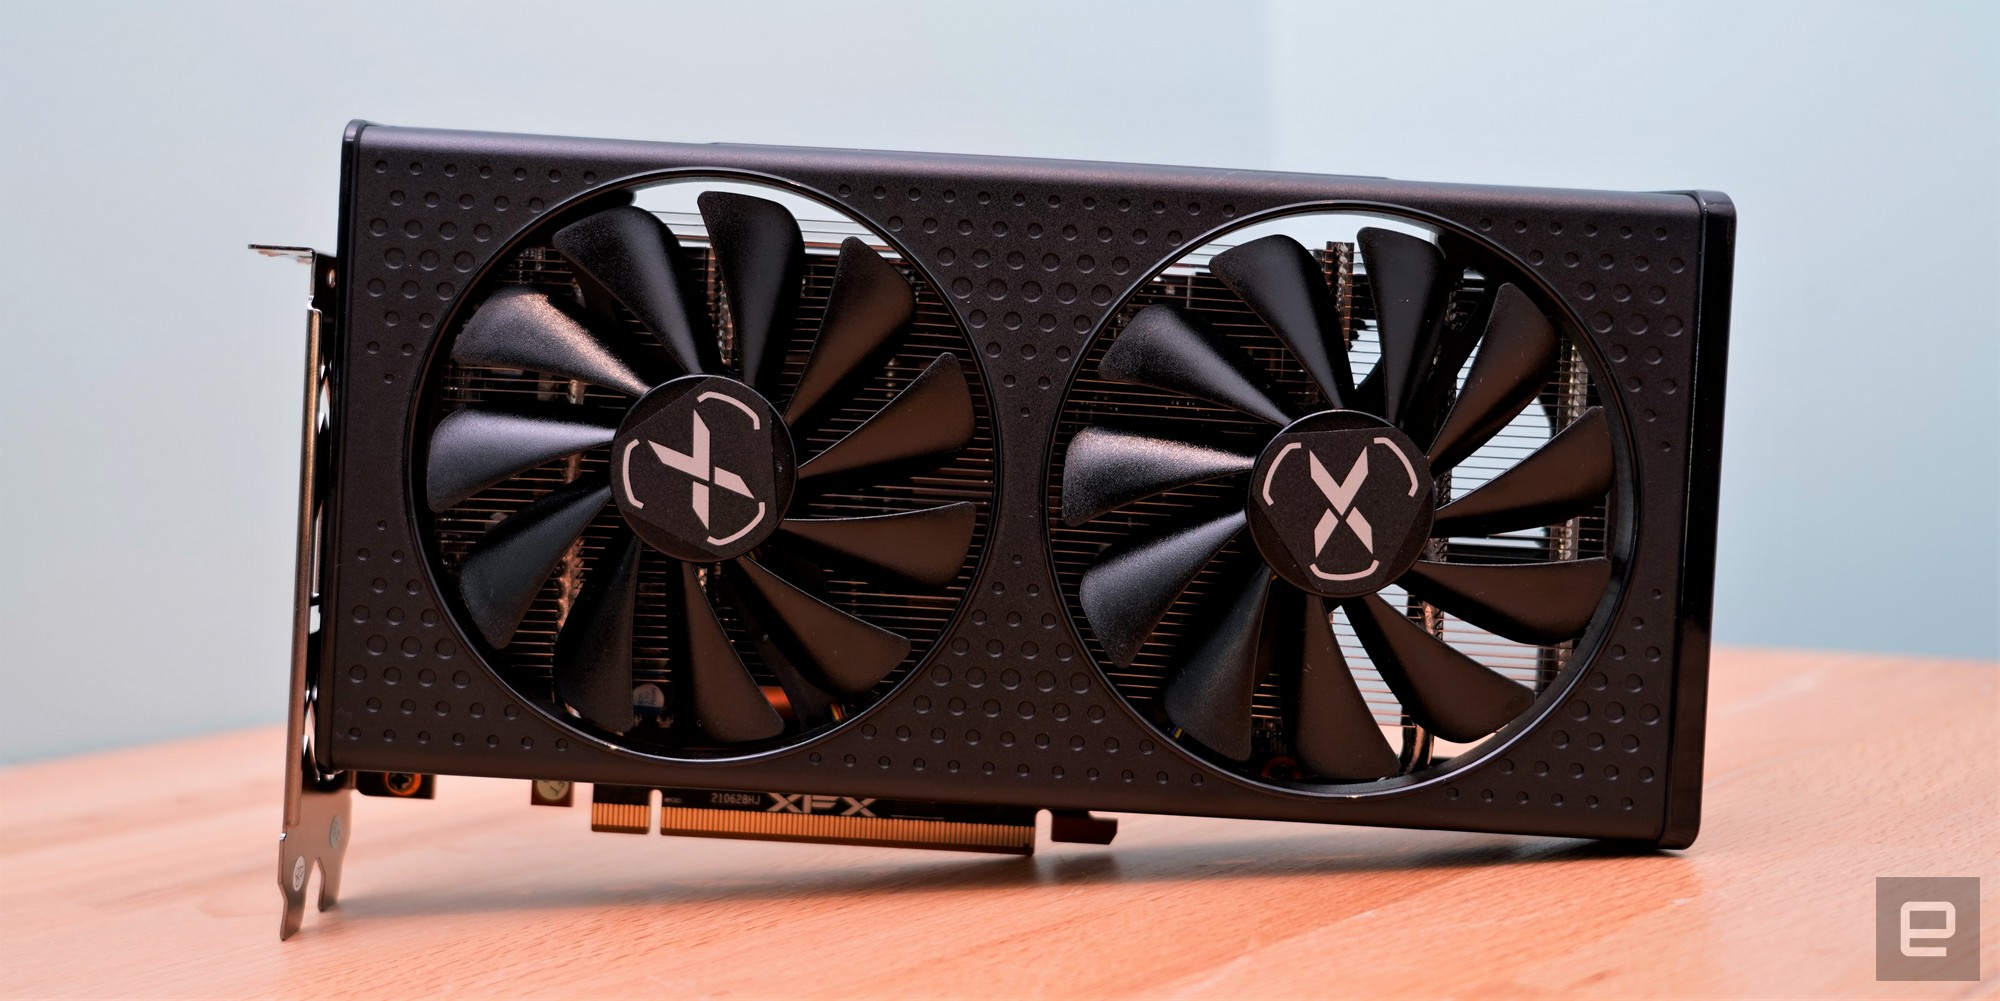 AMD Radeon RX 6600 review: The opposite of future-proof